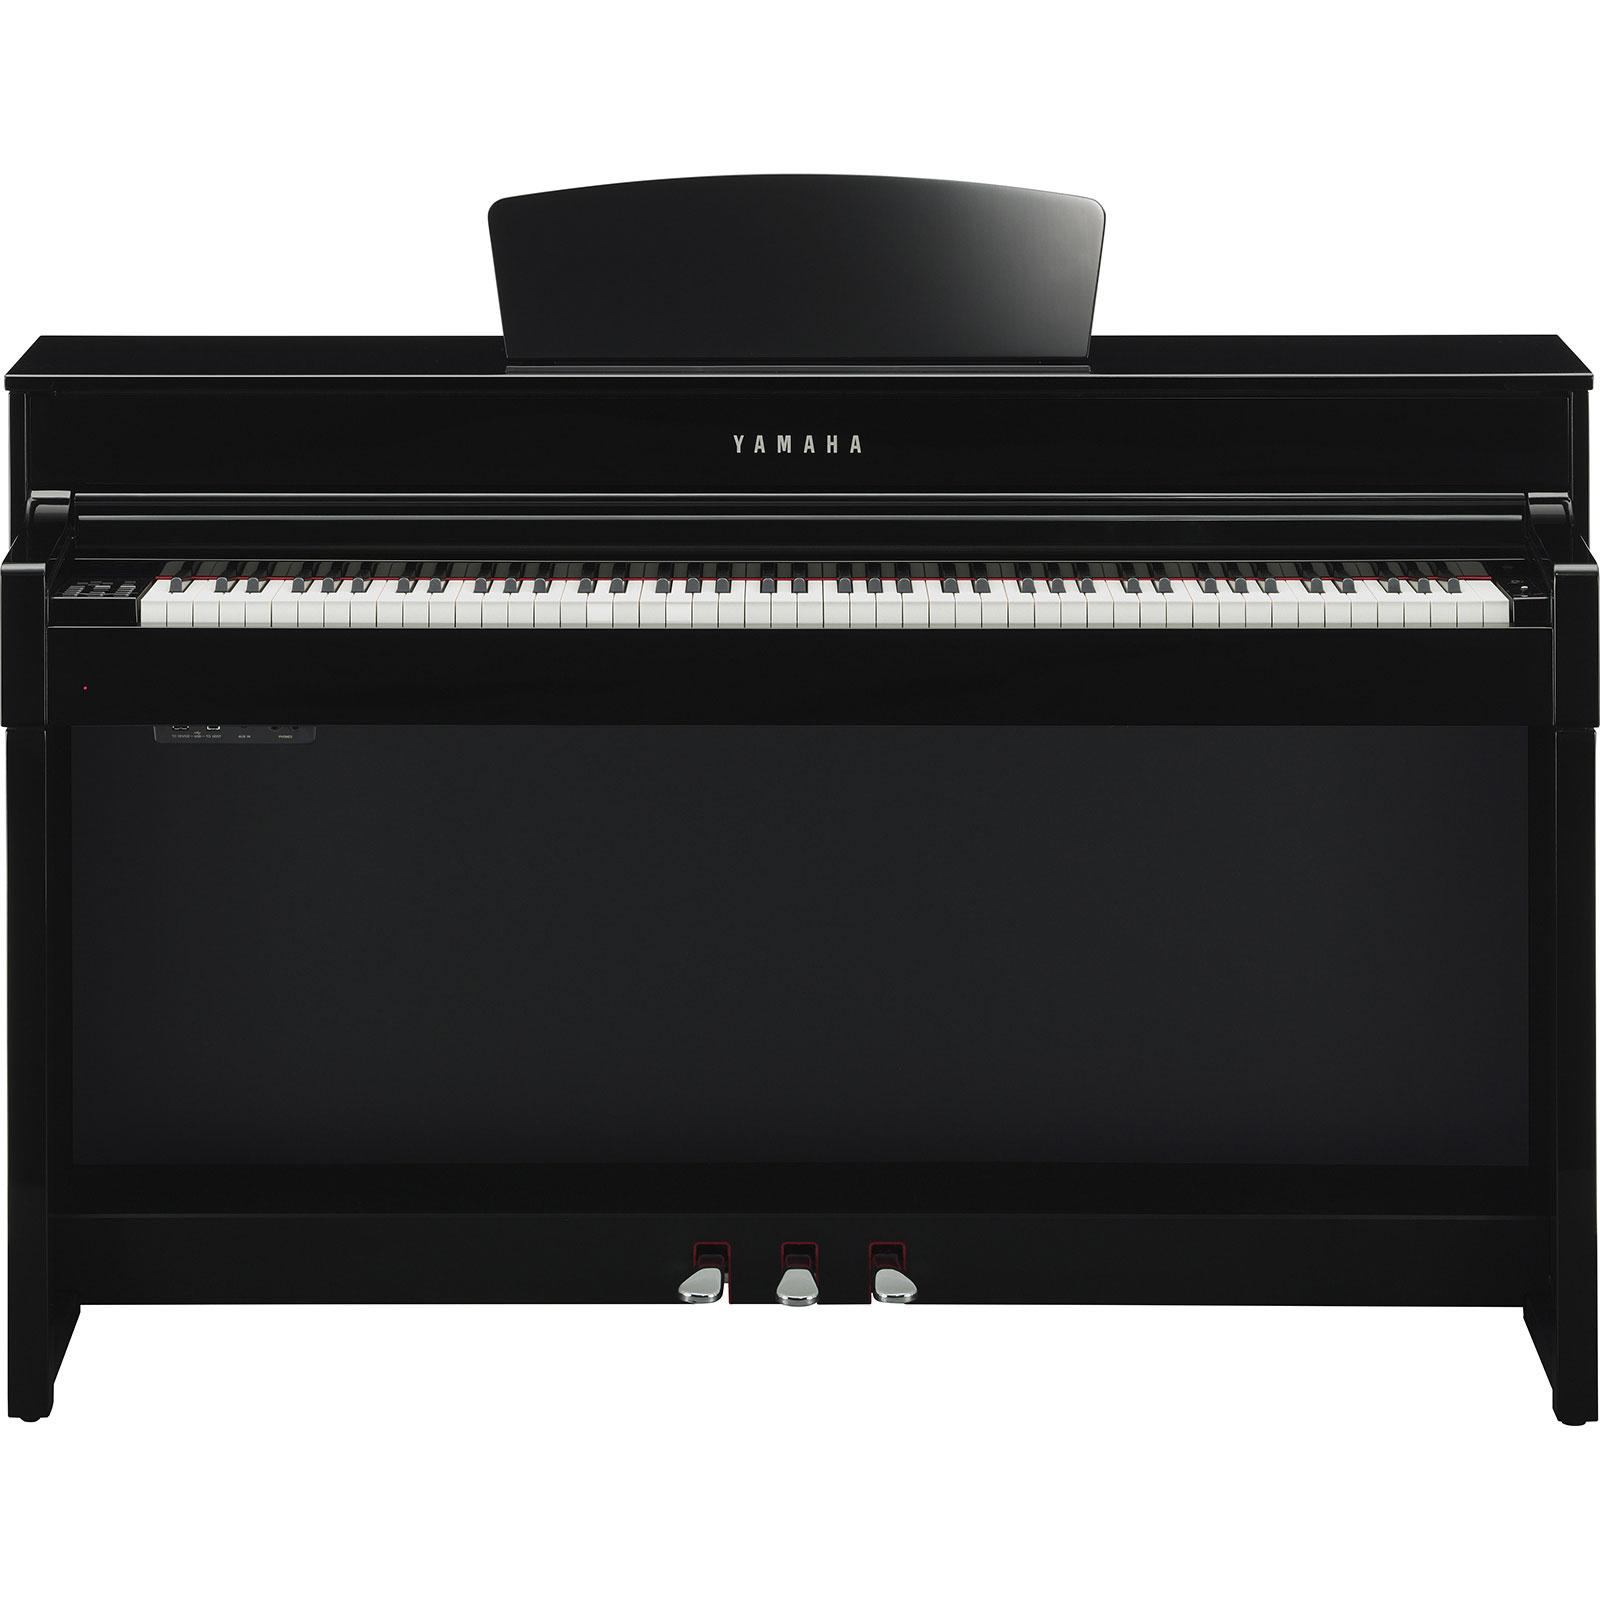 YAMAHA CLP-635 Digitale Piano